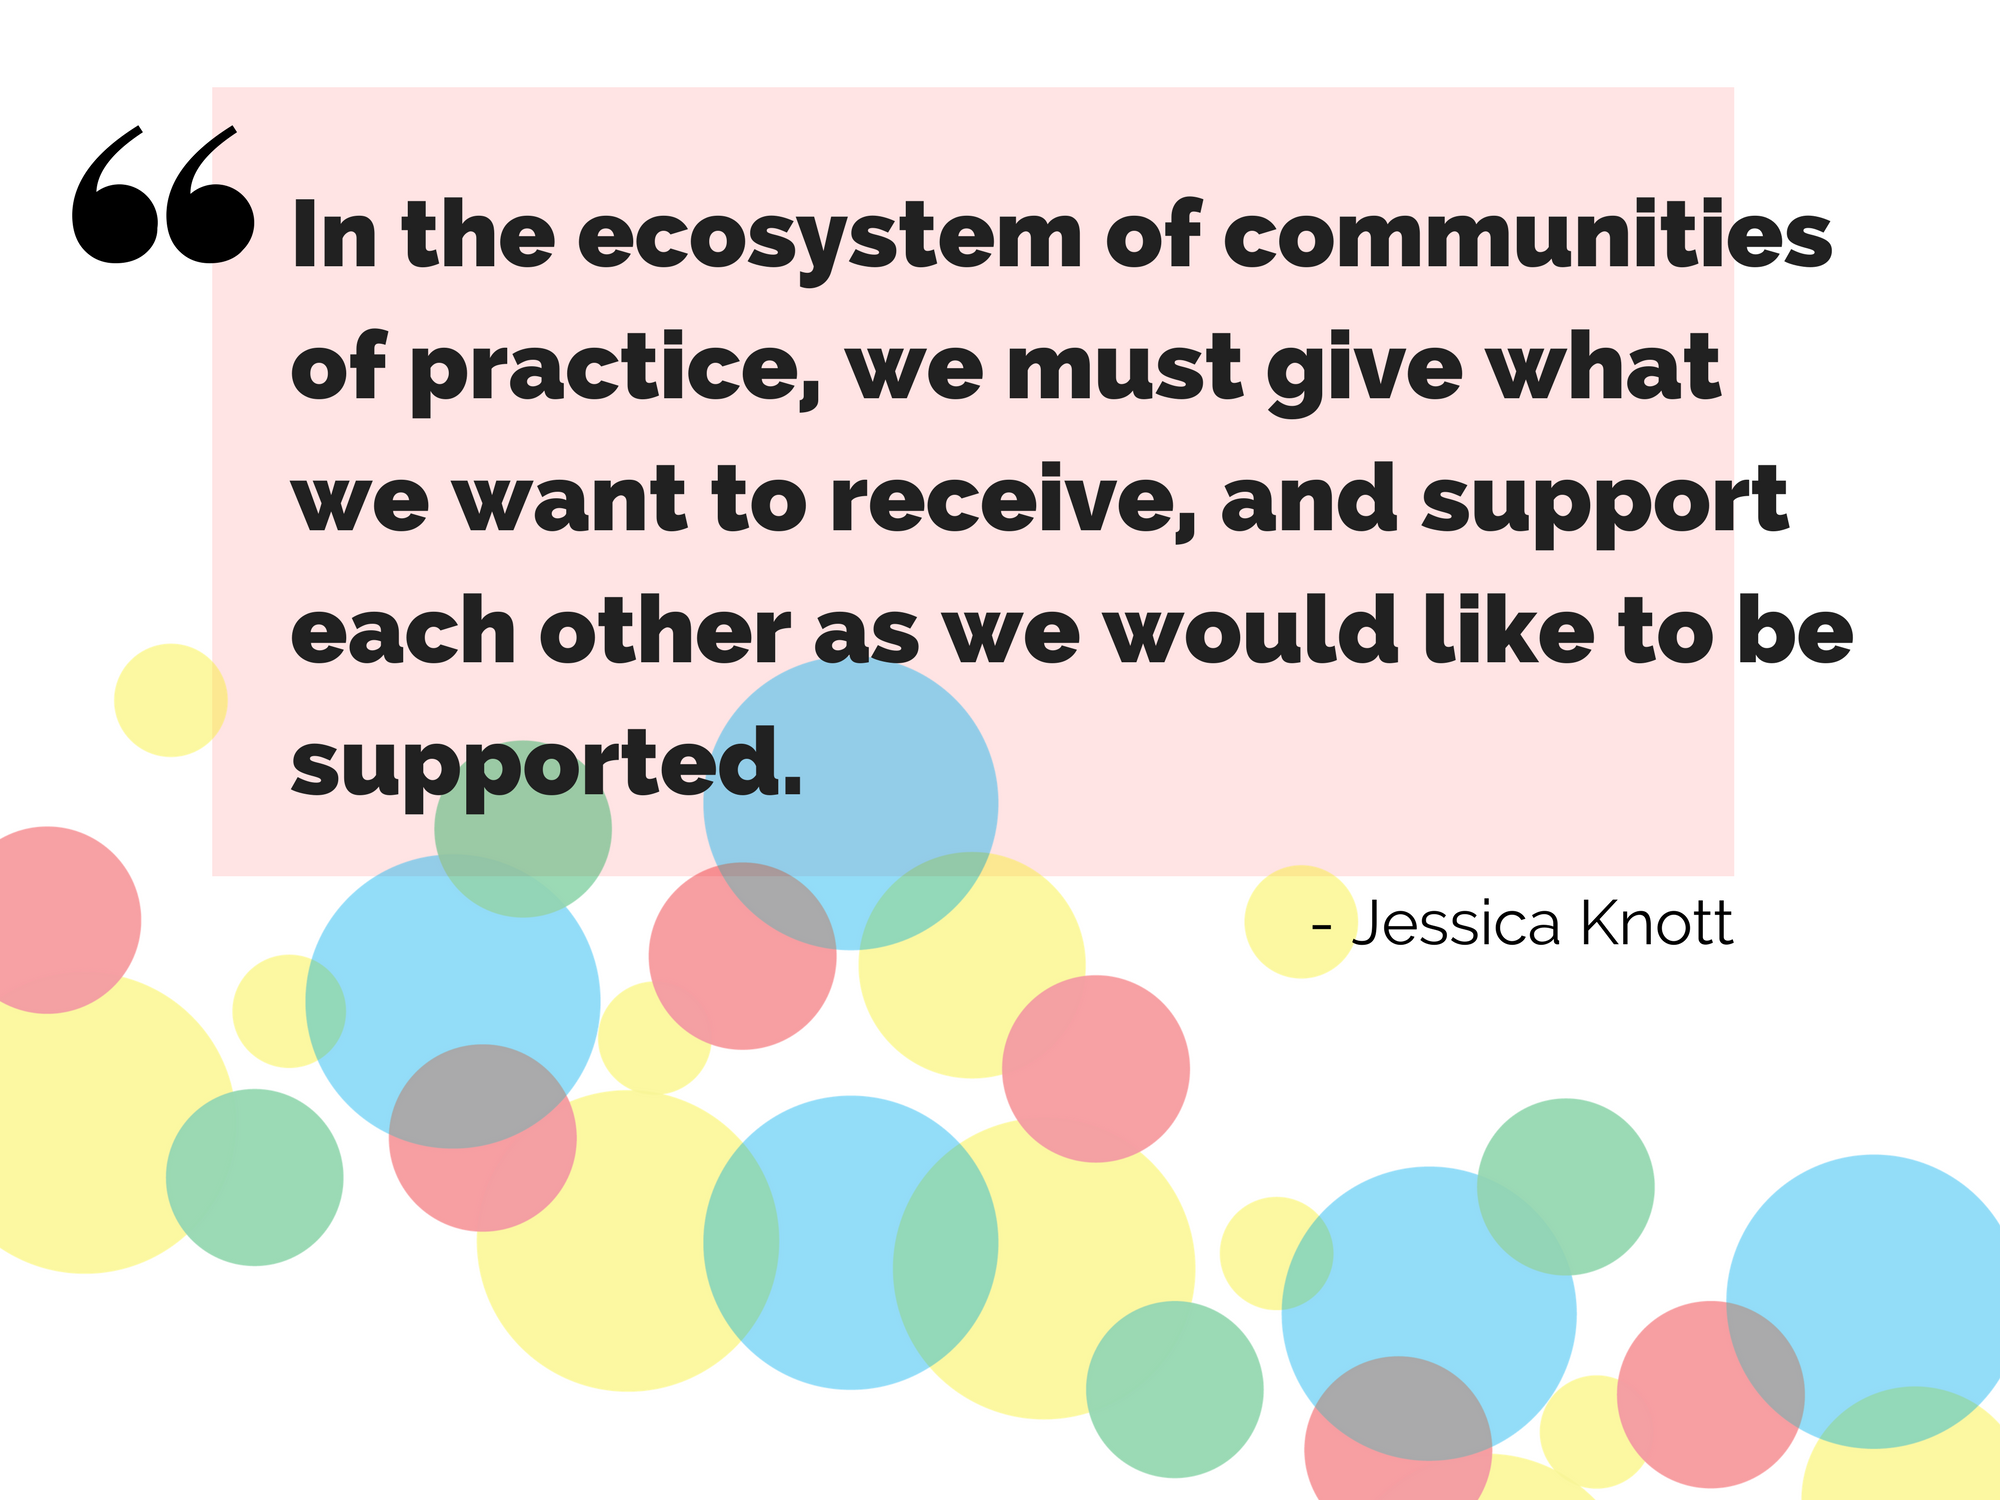 In the ecosystem of communities of practice, we must give what we want to receive, and support each other as we would like to be supported.